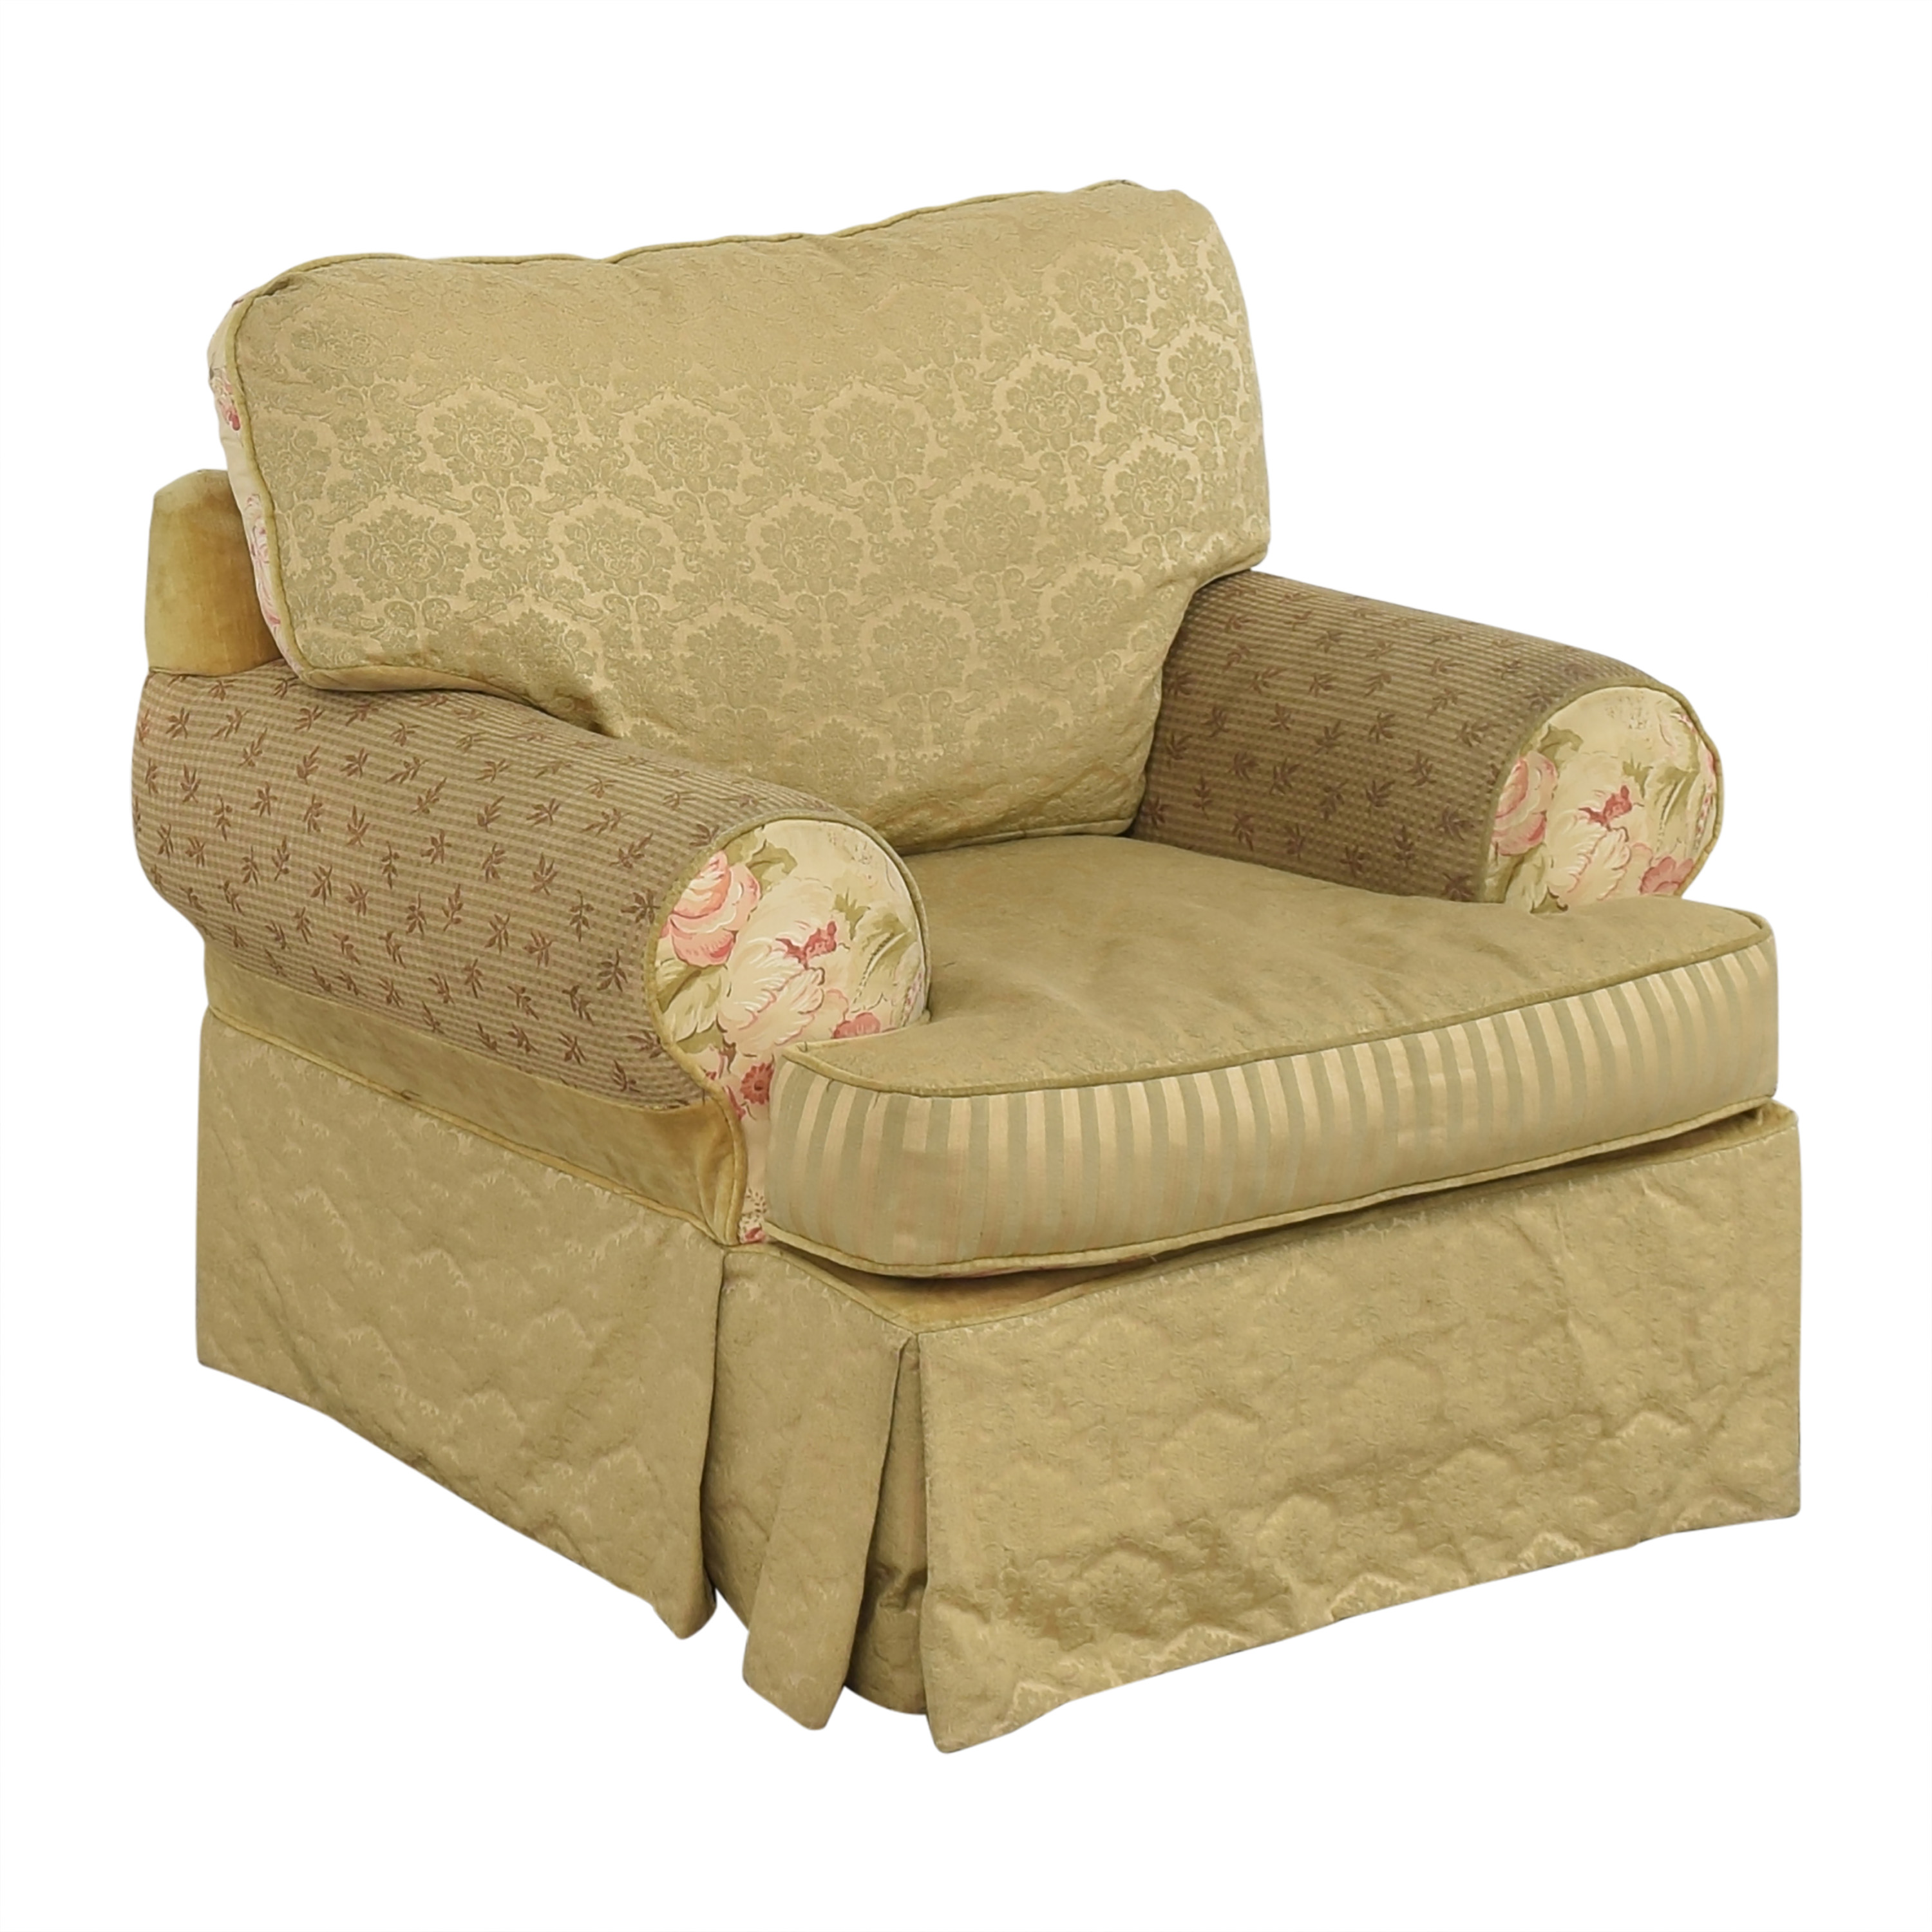 Alexvale Alexvale Floral Accent Chair nj